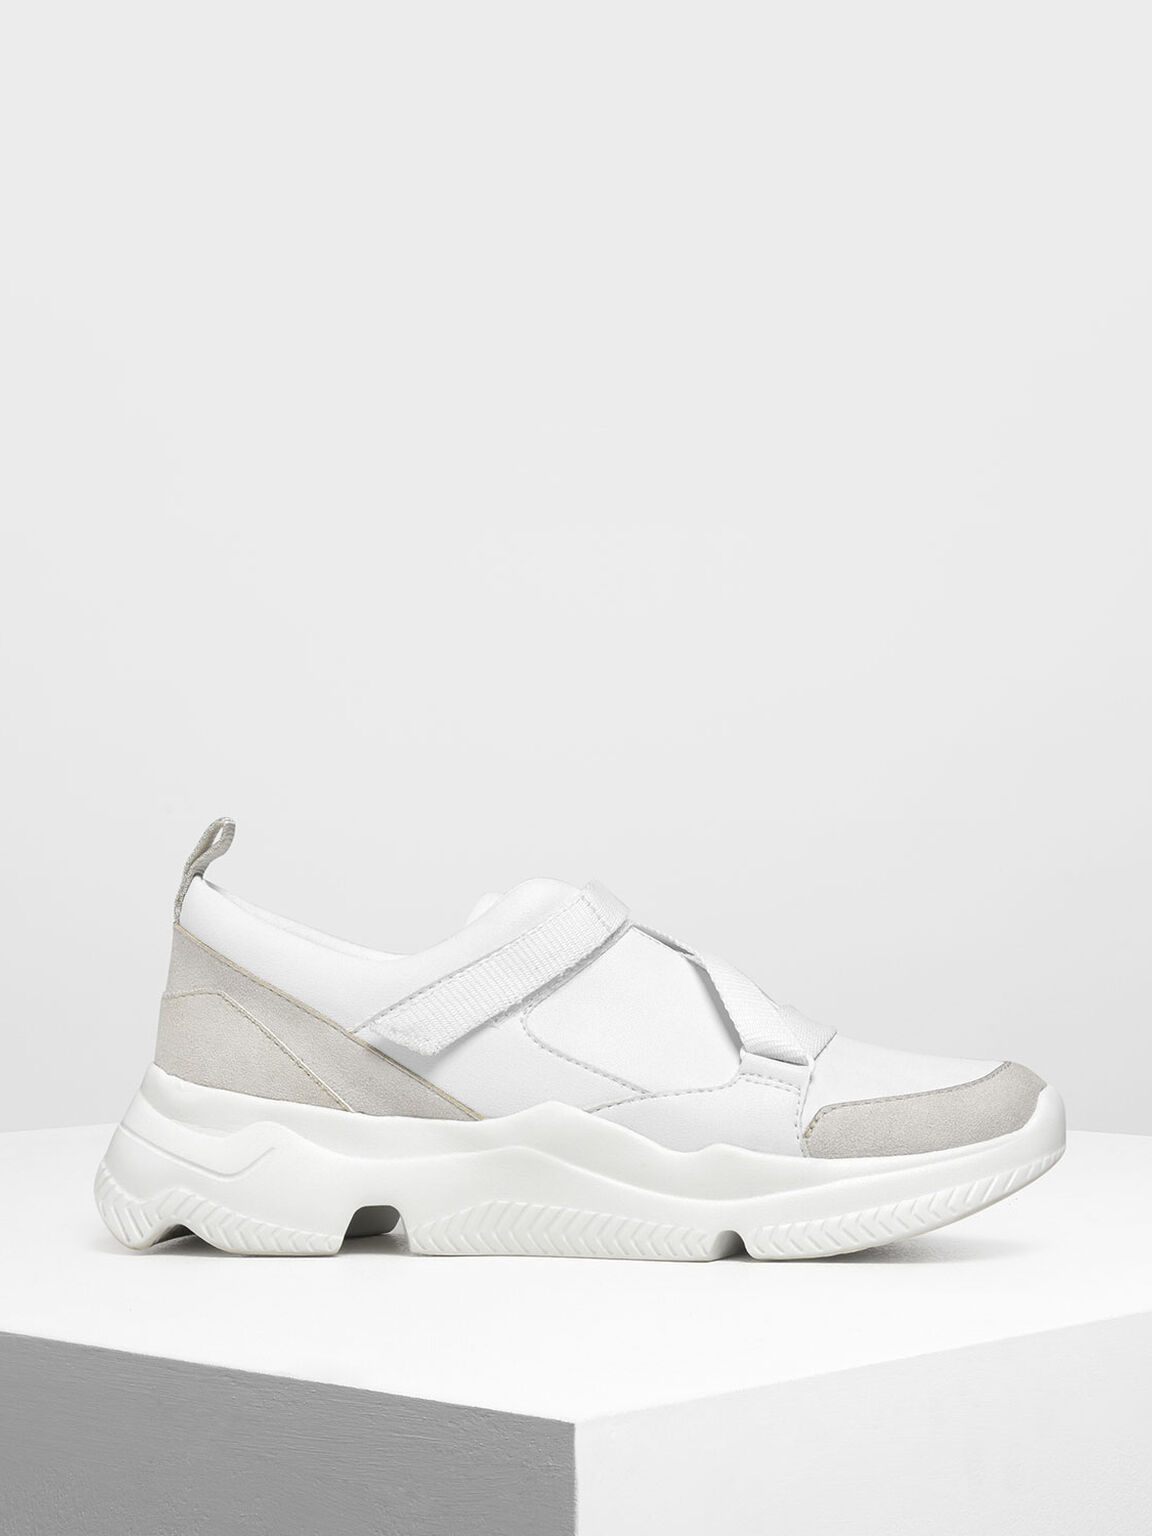 Velcro Slip-On Sneakers, White, hi-res